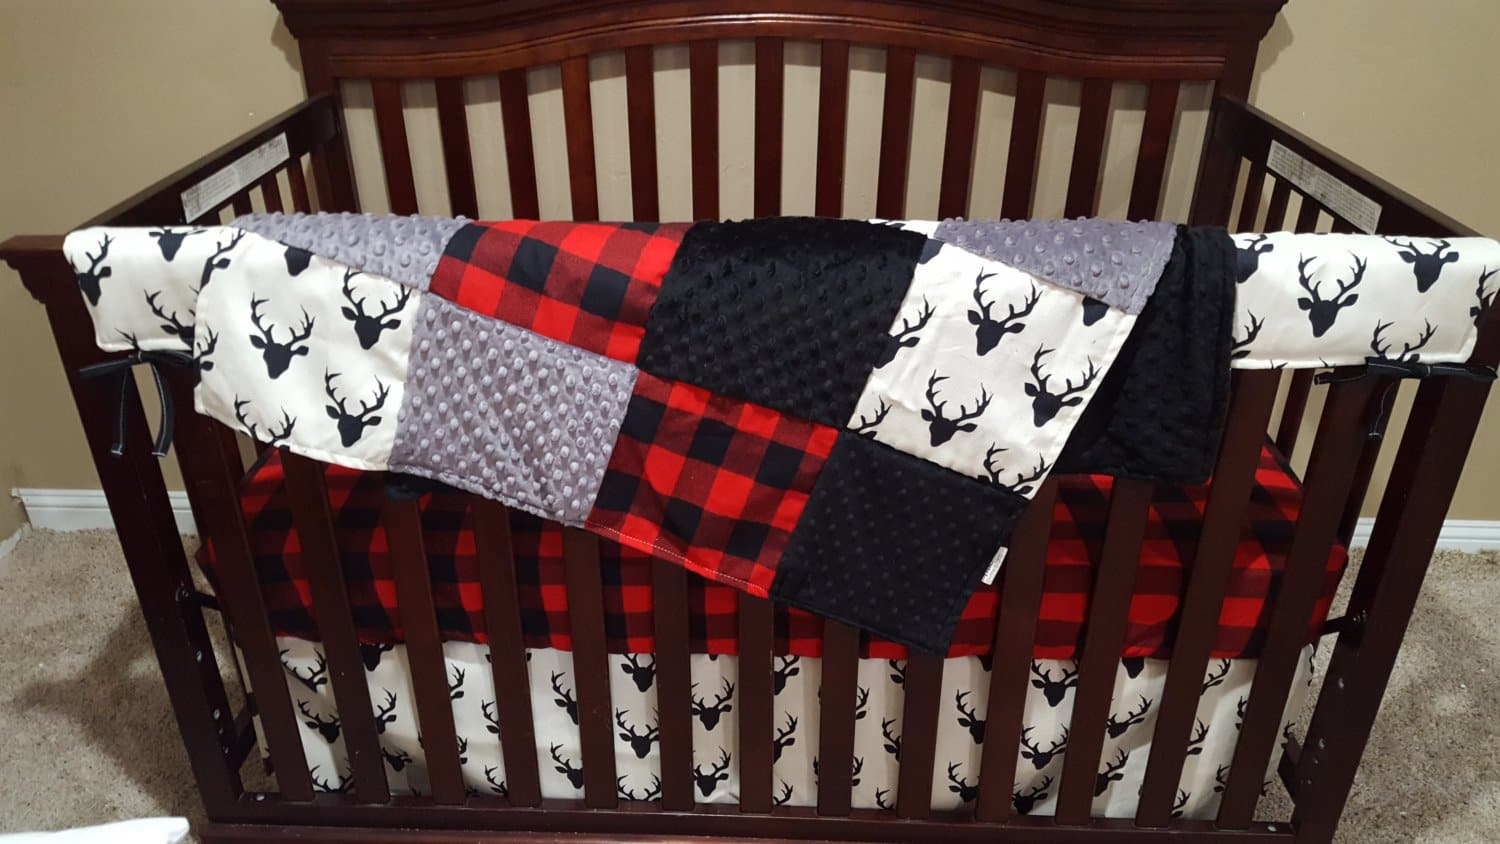 2 Day Ship Boy Crib Bedding - Buck Deer, Lodge Red Buffalo Check, and Gray, Woodland Collection